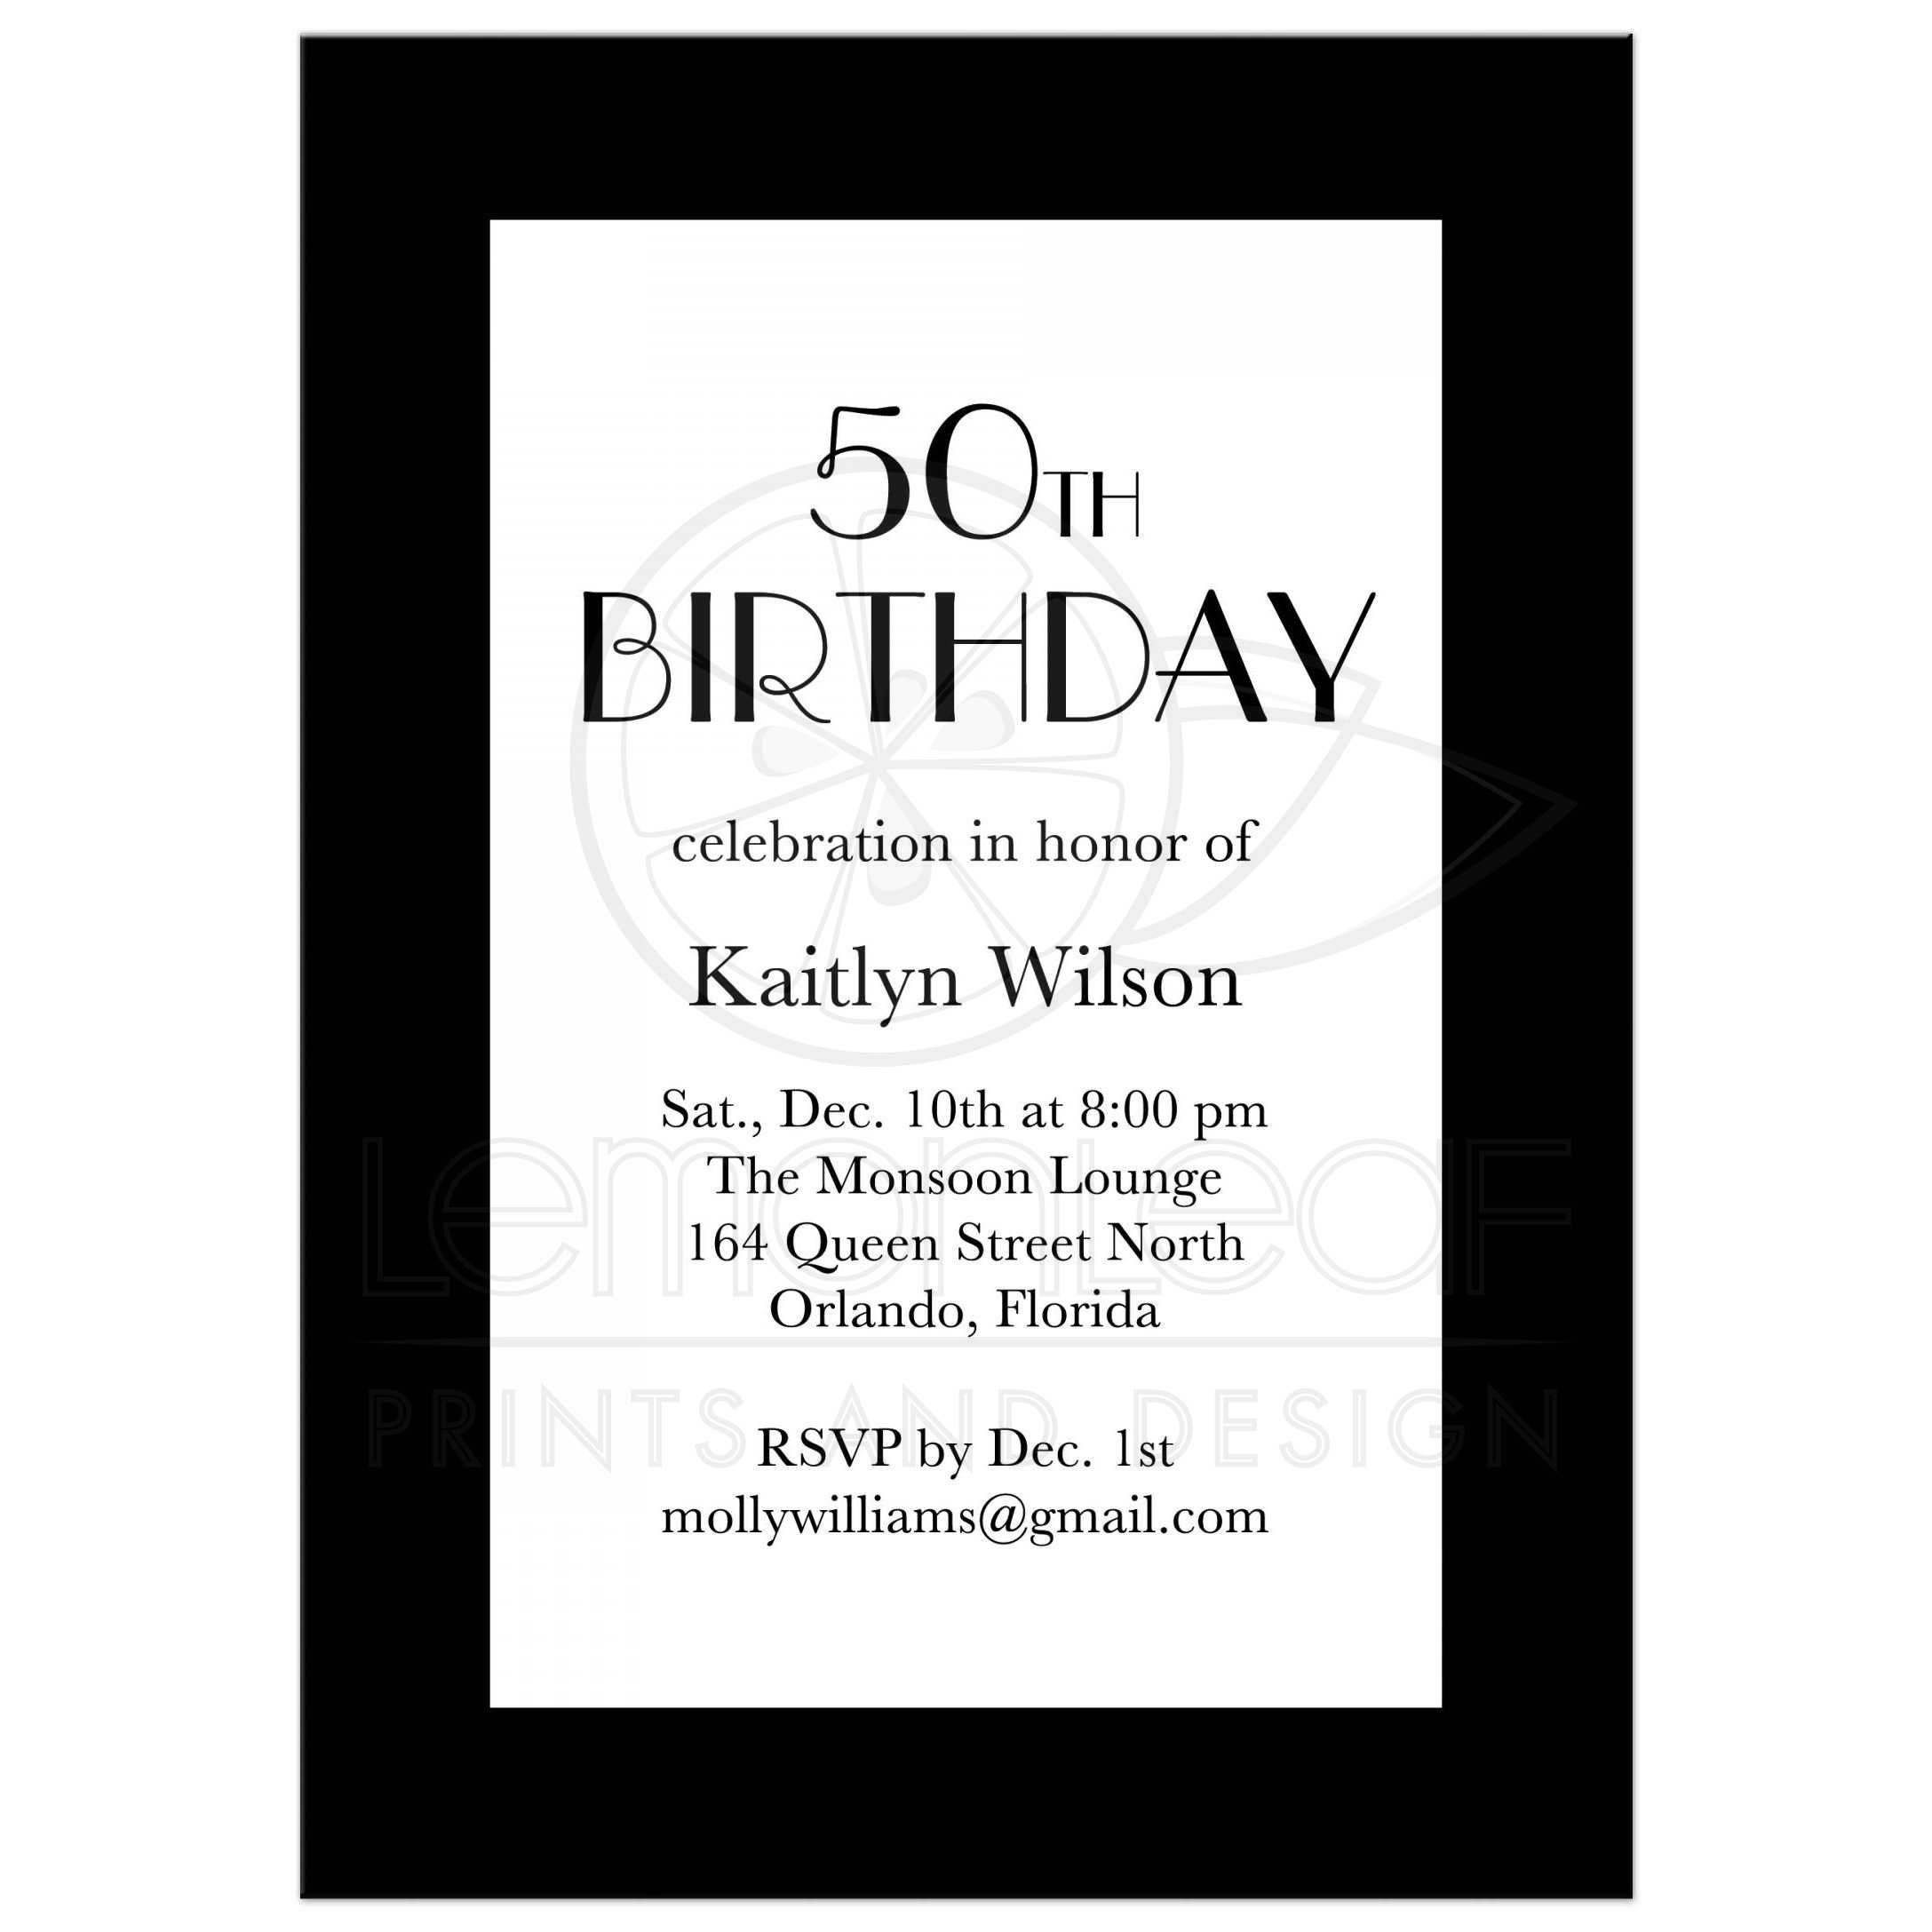 Birthday invitation black white 1920s time to drink champagne black white birthday invitation filmwisefo Images